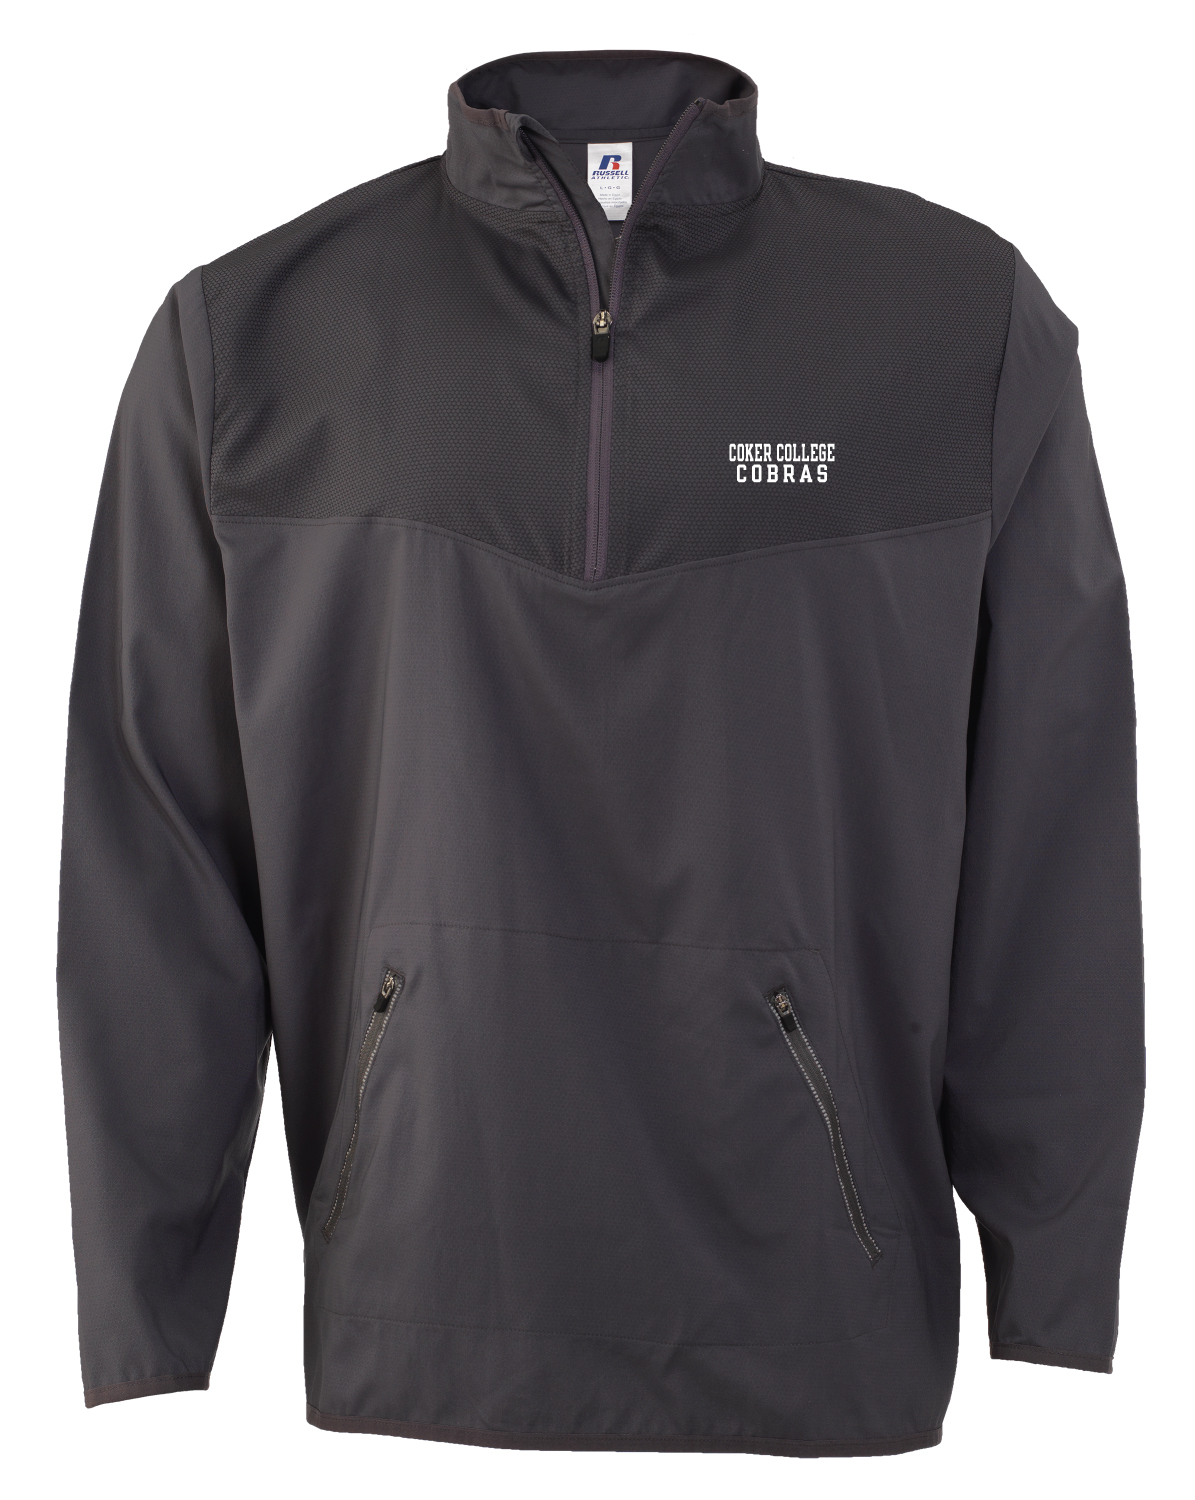 Image For Clearance Jacket 1/4 ZIP JACKET